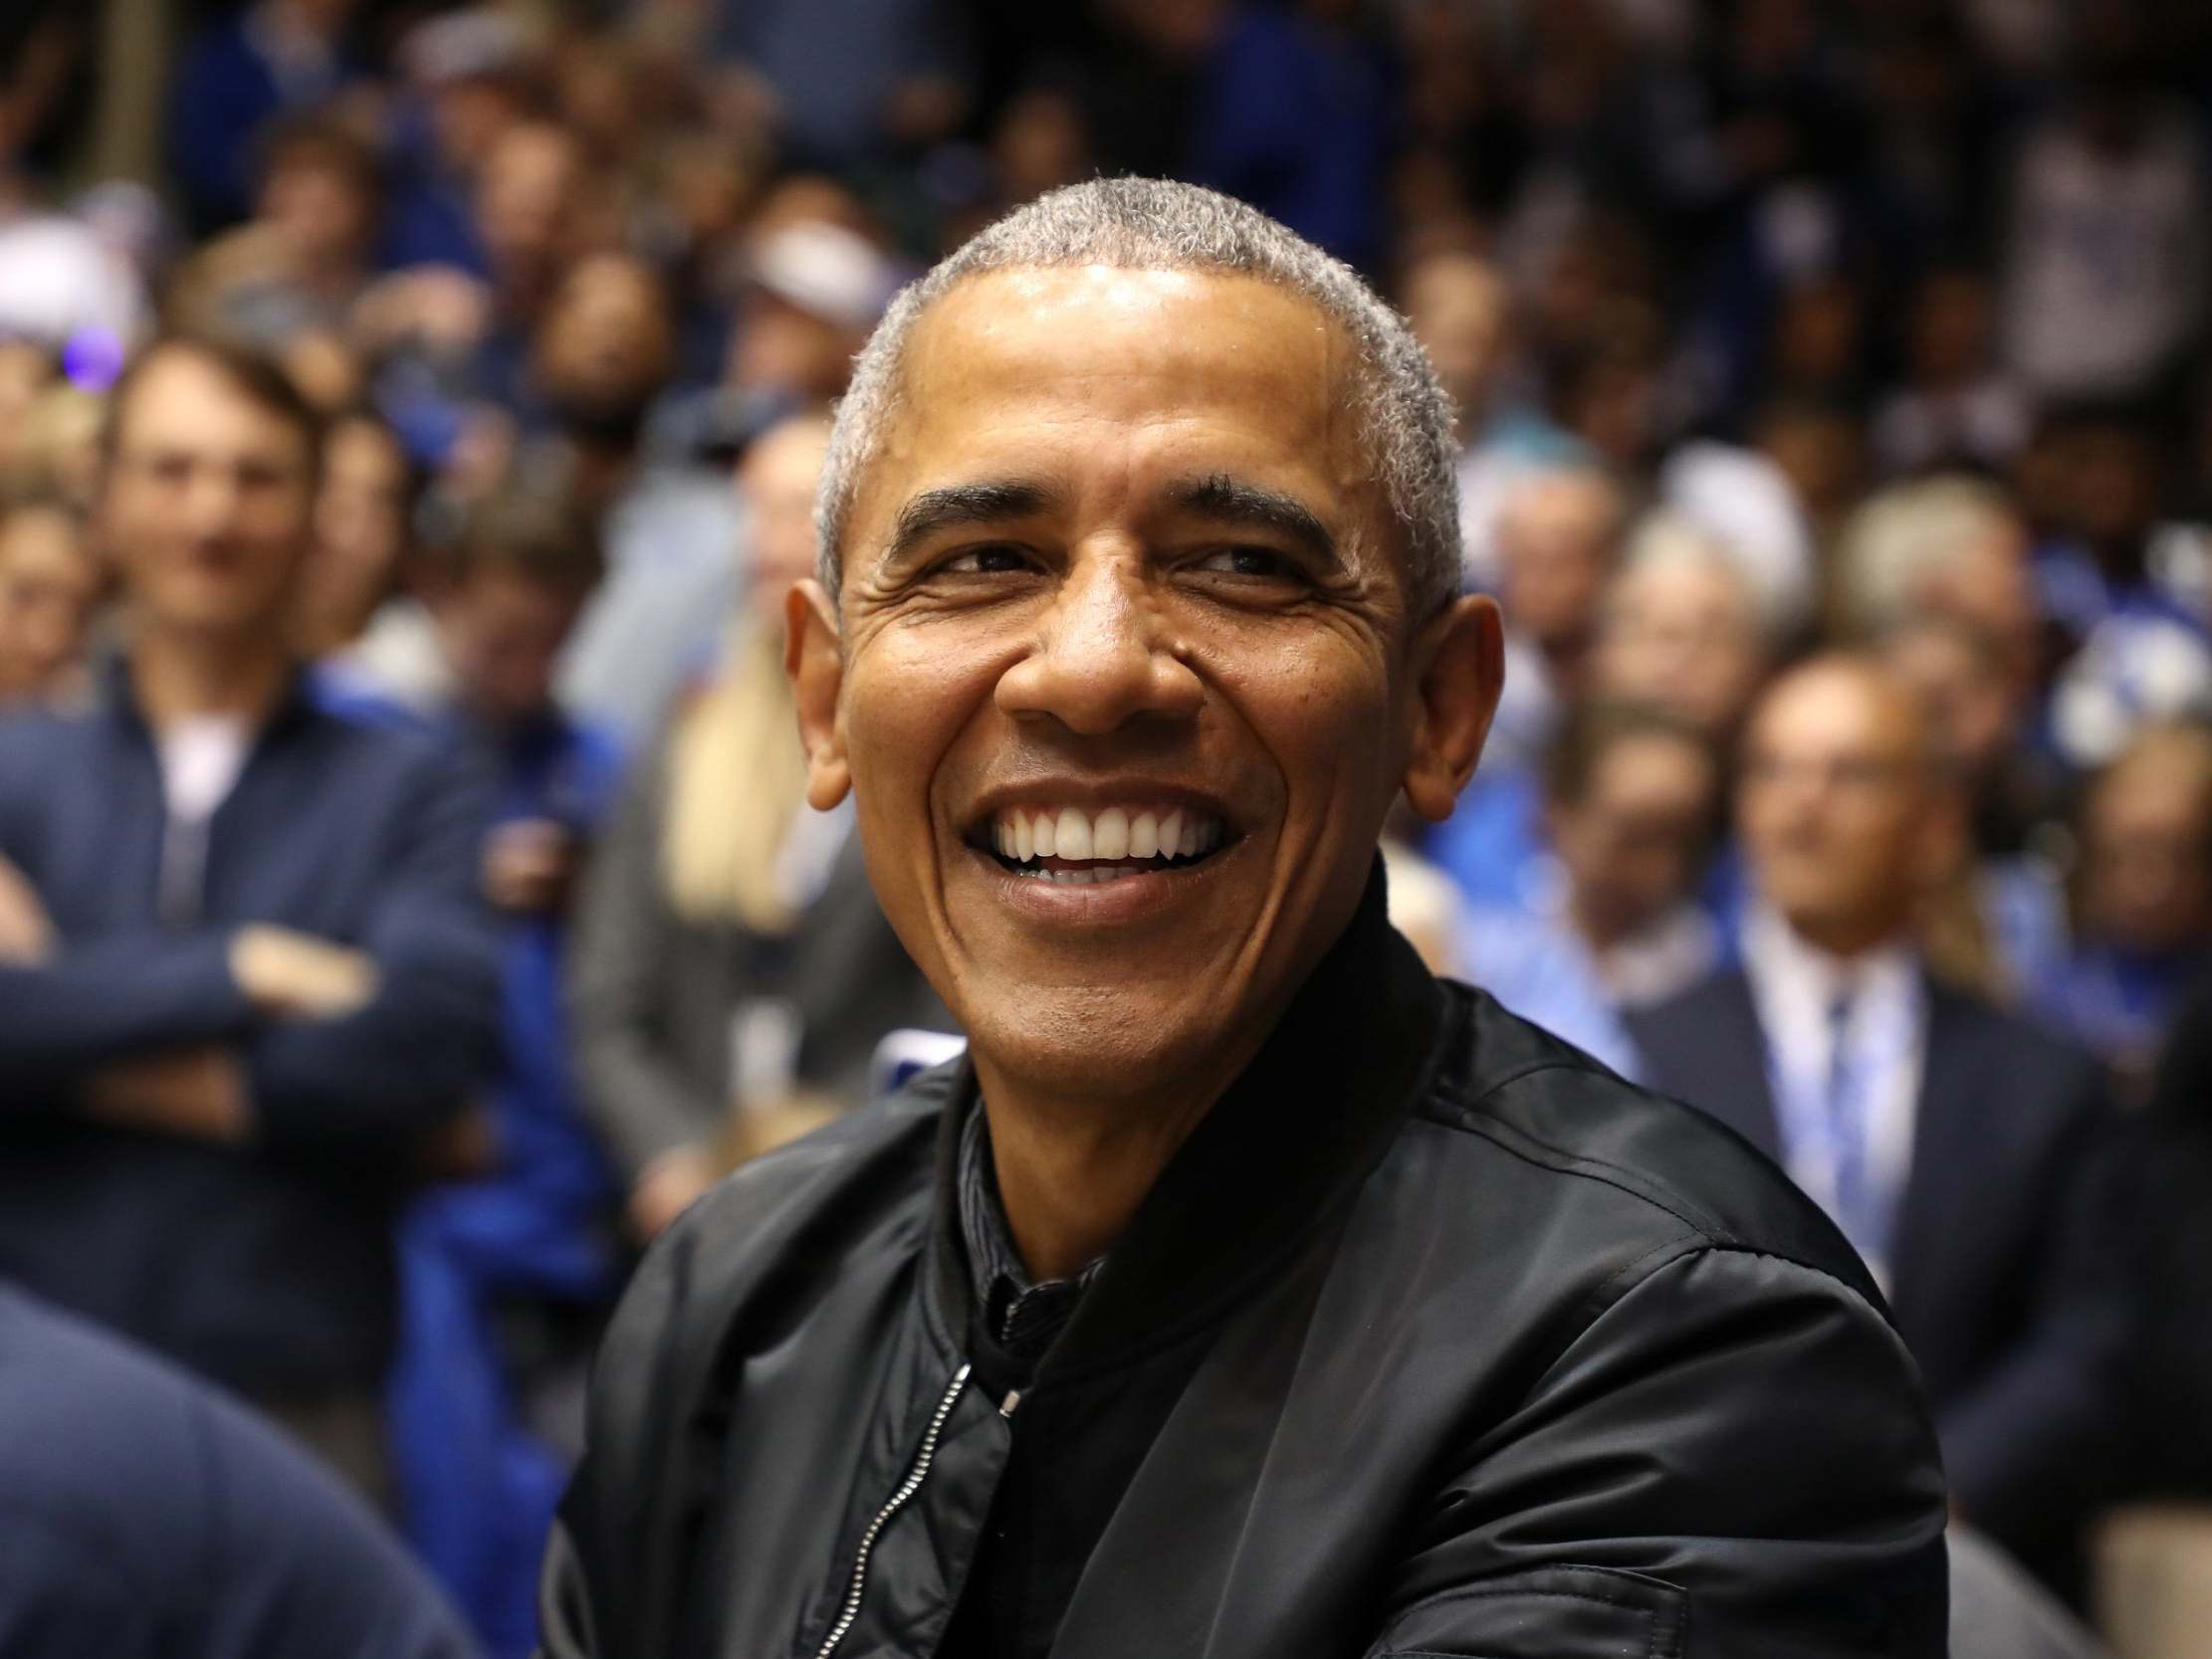 Best quotes by Barack Obama